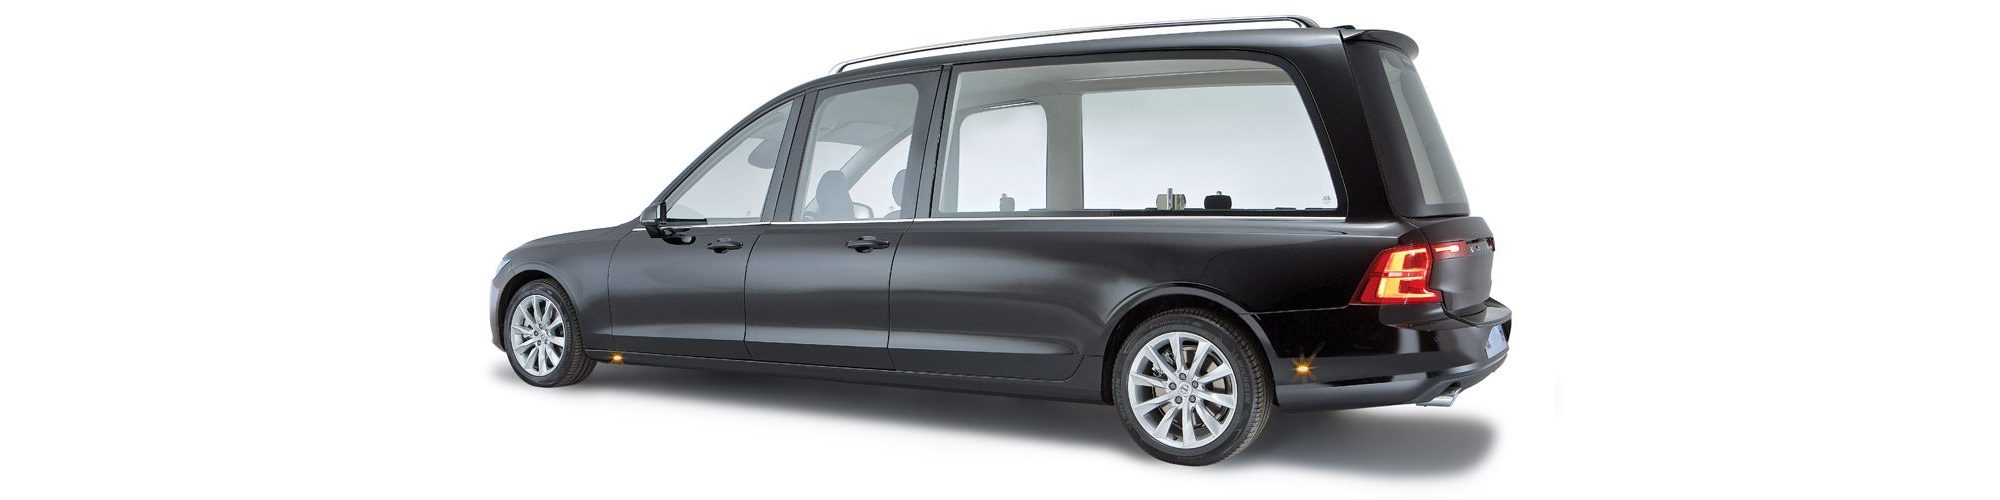 5 Door Volvo Hearse